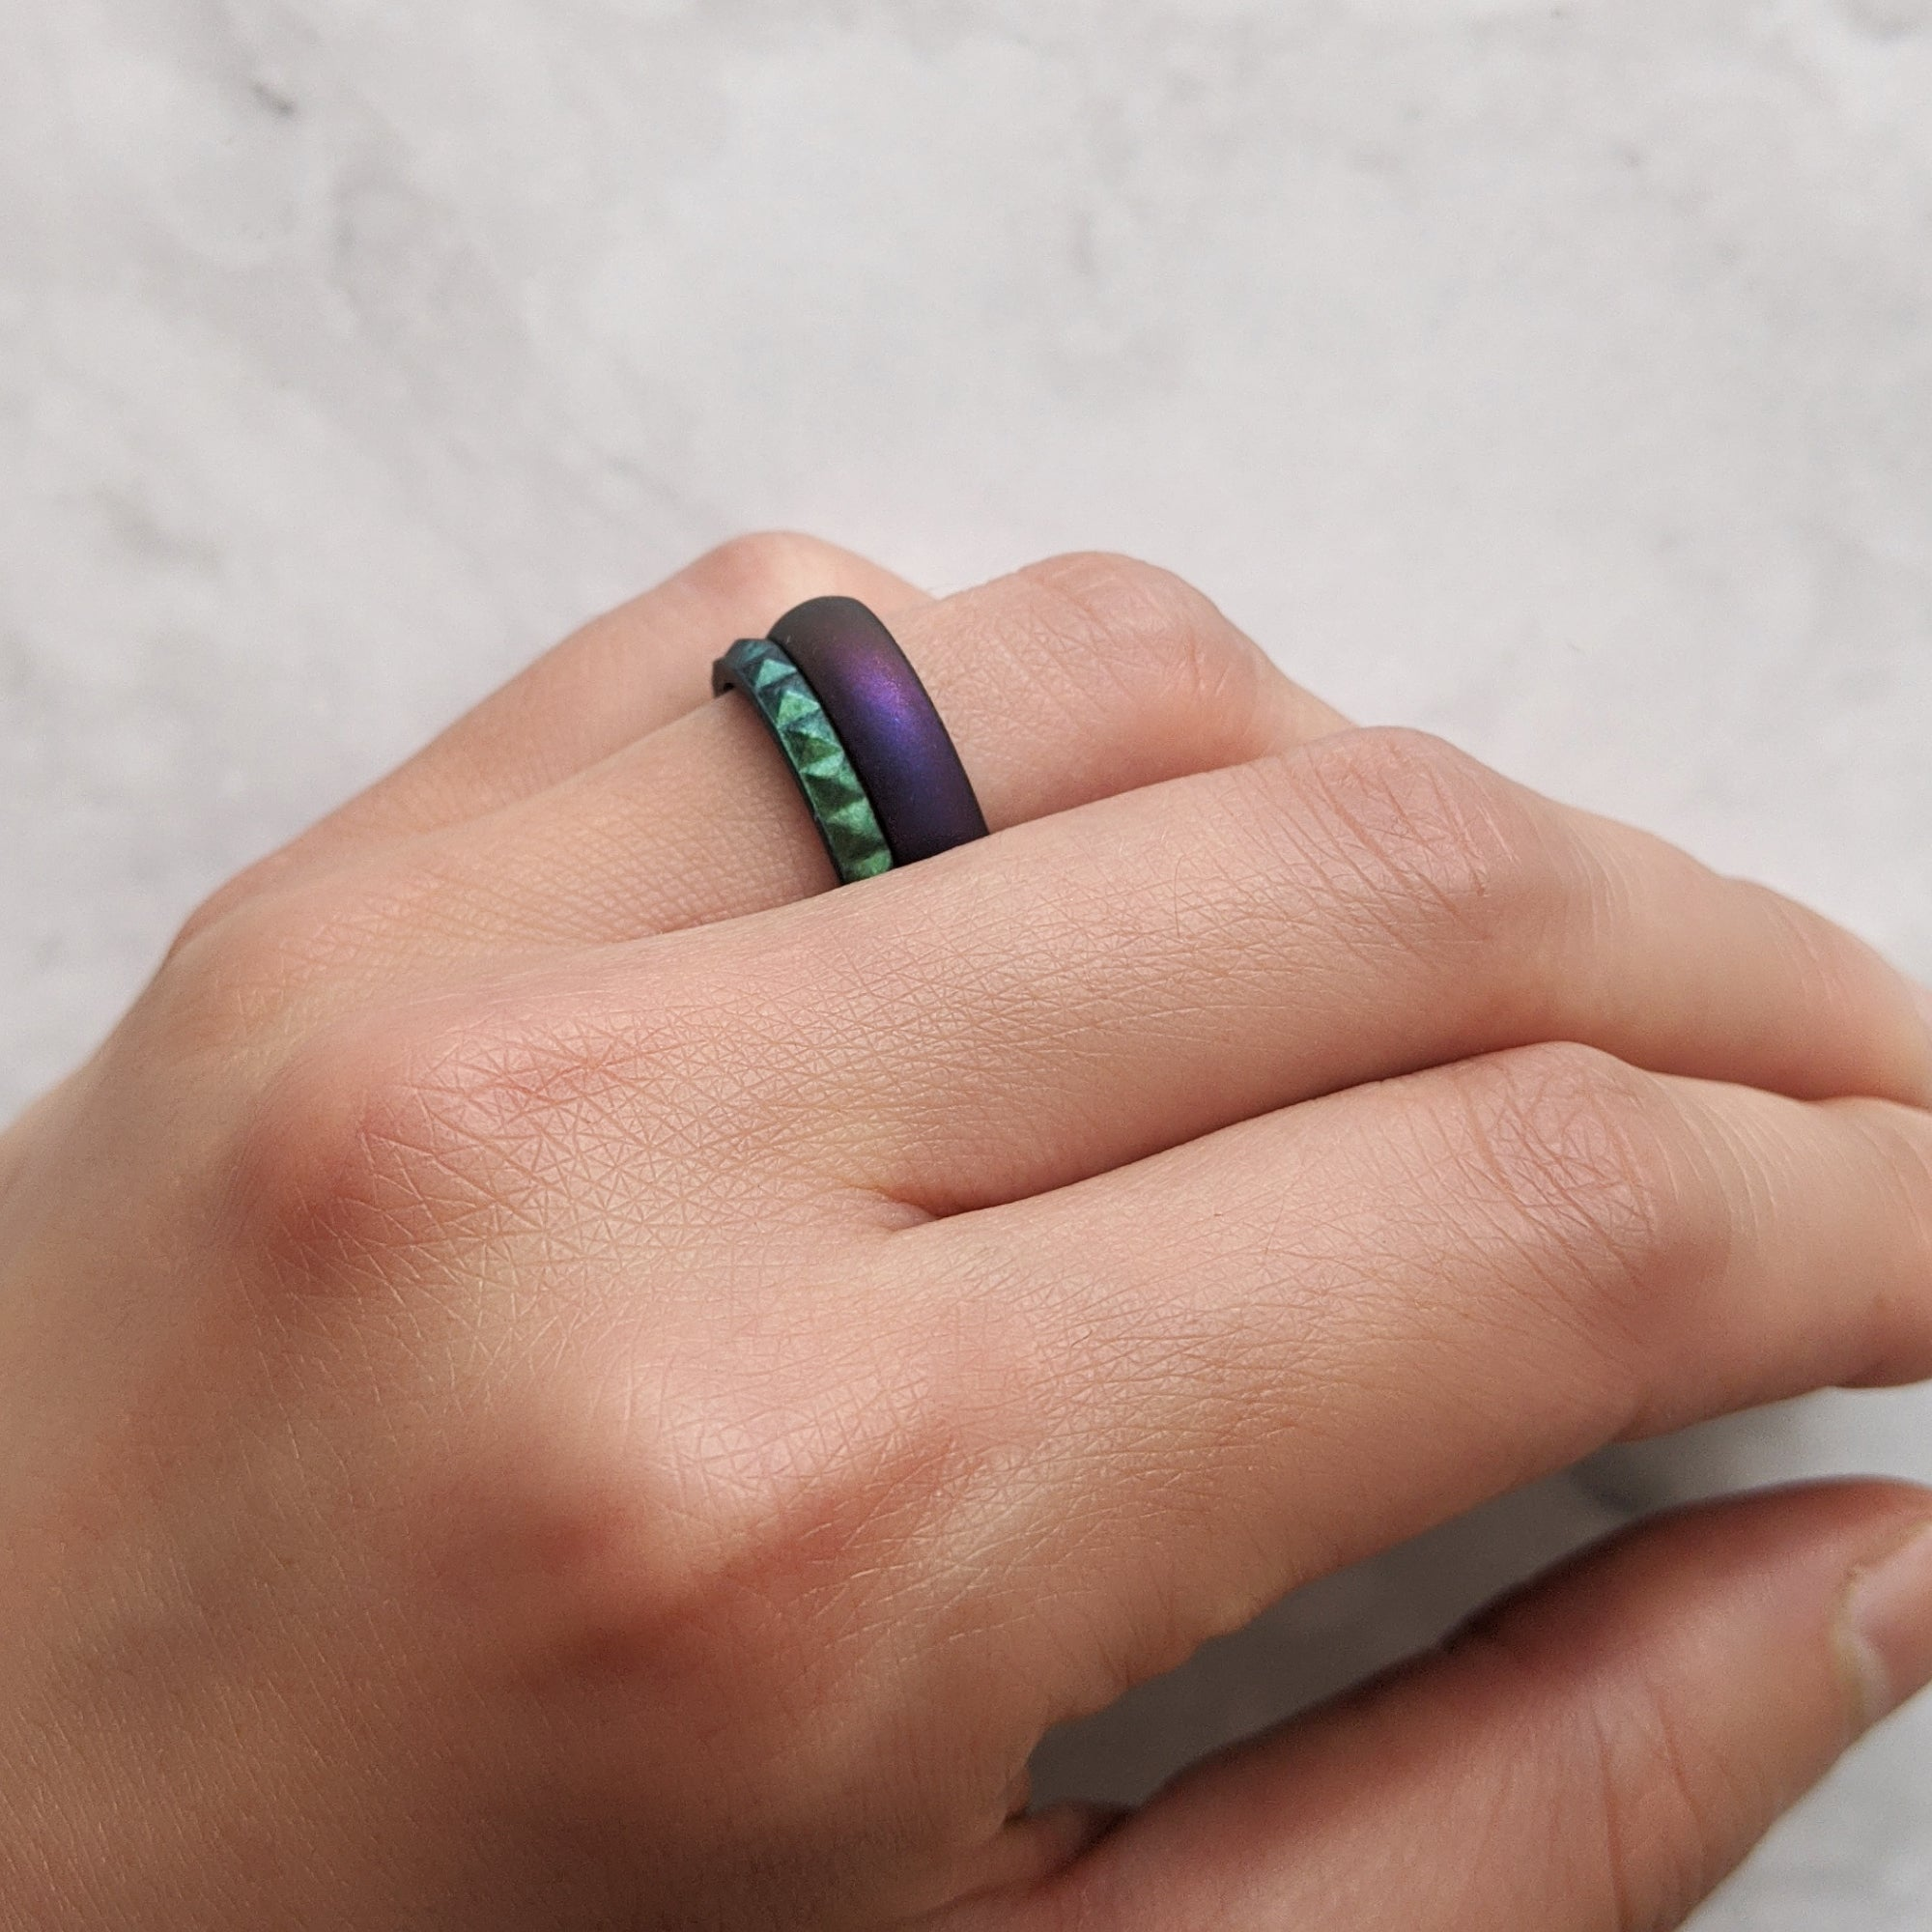 Cosmic Purple Breathable Silicone Ring for Women